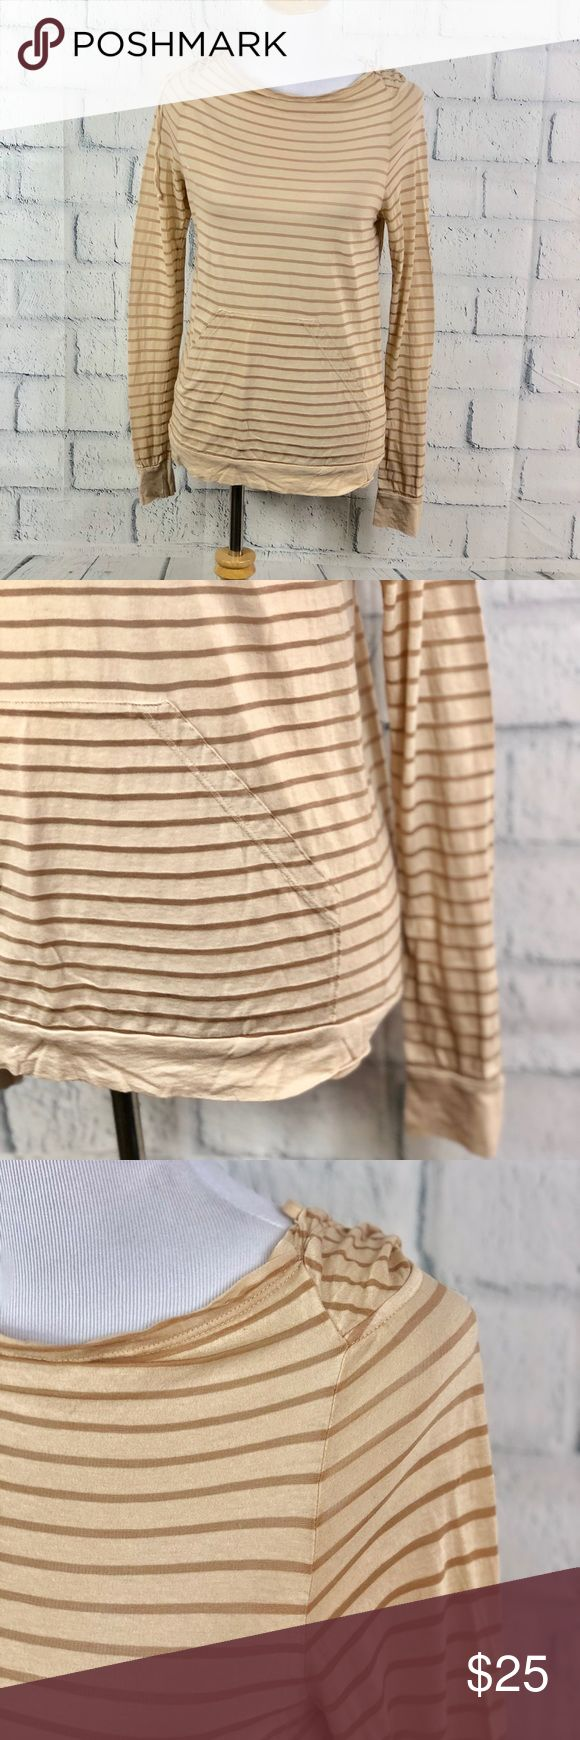 """3 Dots Womens Striped Knit Long Sleeve Hoodie 3 Dots Womens Striped Knit Hooded Long Sleeve Shirt Beige and Tan Stripes  Drawstring Hood  Kangaroo pocket on the front  Size XS 78% Supima Cotton 22% Tencel Trim  Pit to Pit: 18"""" Length: 25"""" In Excellent Condition  (B1) 3 Dots Tops Tees - Long Sleeve"""